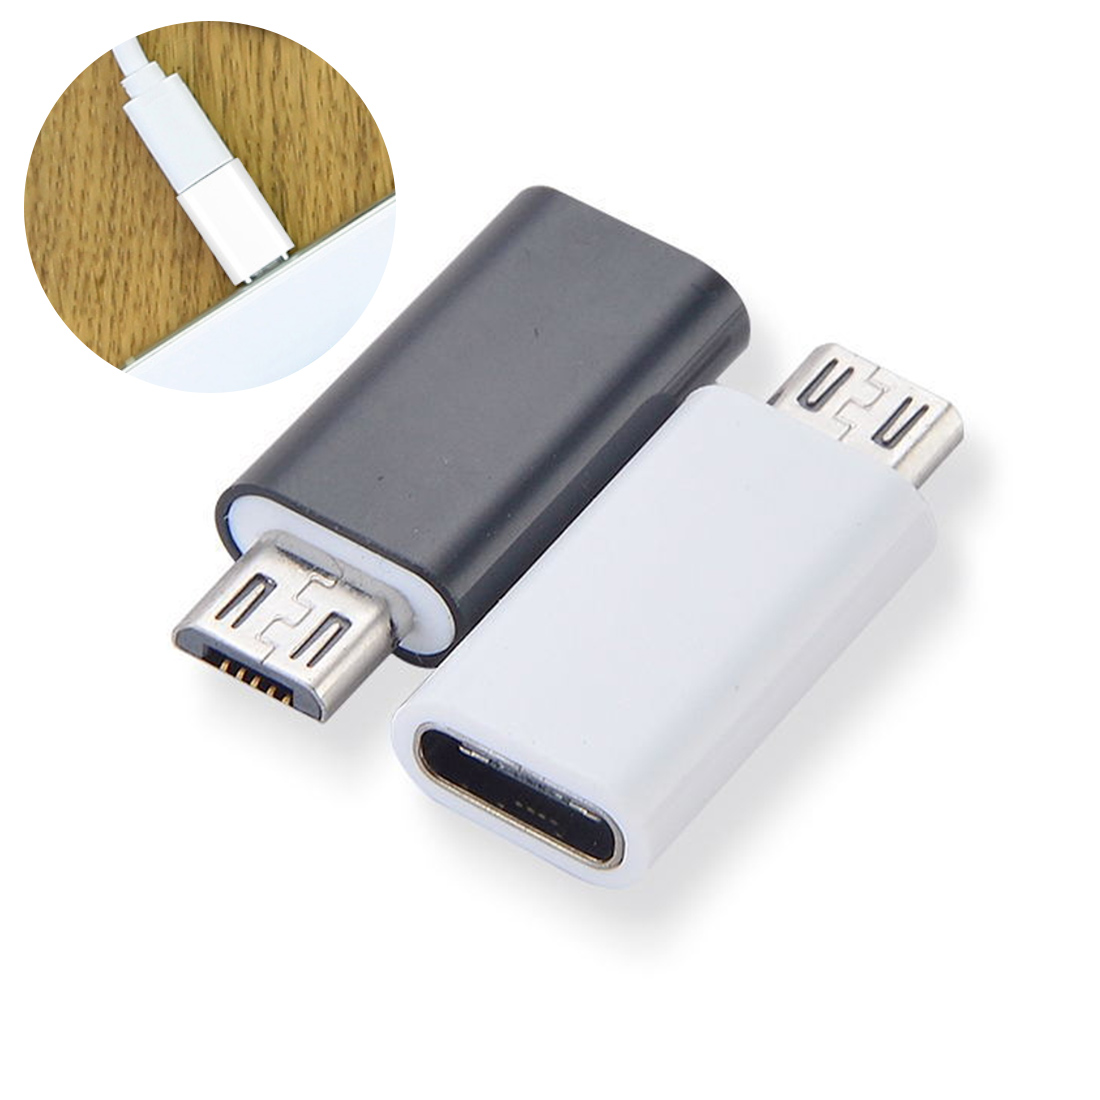 Mini Universal Type-C Female To Micro USB 2.0 Male USB 3.1 Converter Data Adapter For Phone Tablet PC